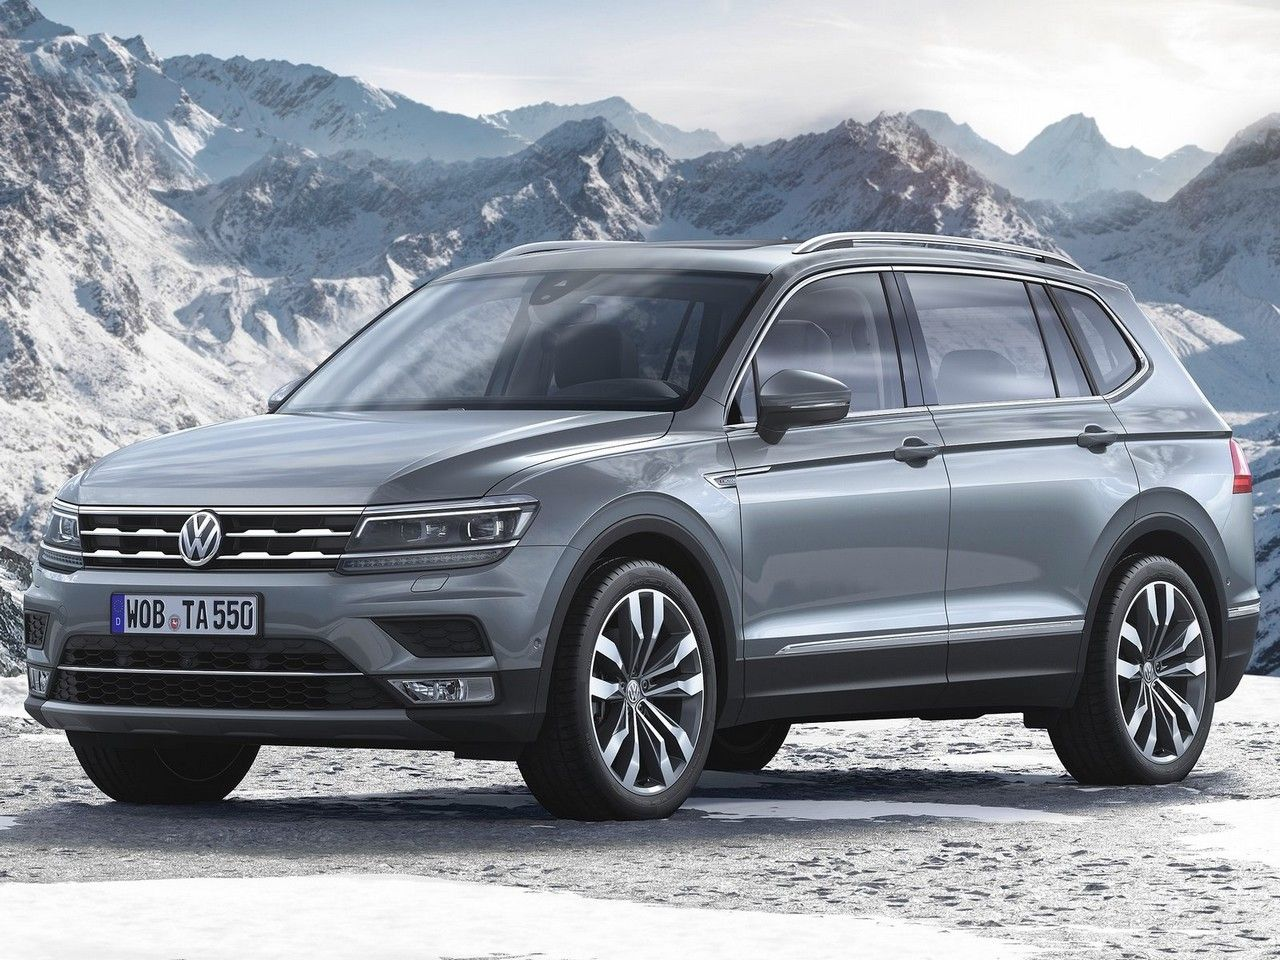 volkswagen tiguan allspace 2018 moteur 4 cylindres de 2 0 litres 184 ch. Black Bedroom Furniture Sets. Home Design Ideas